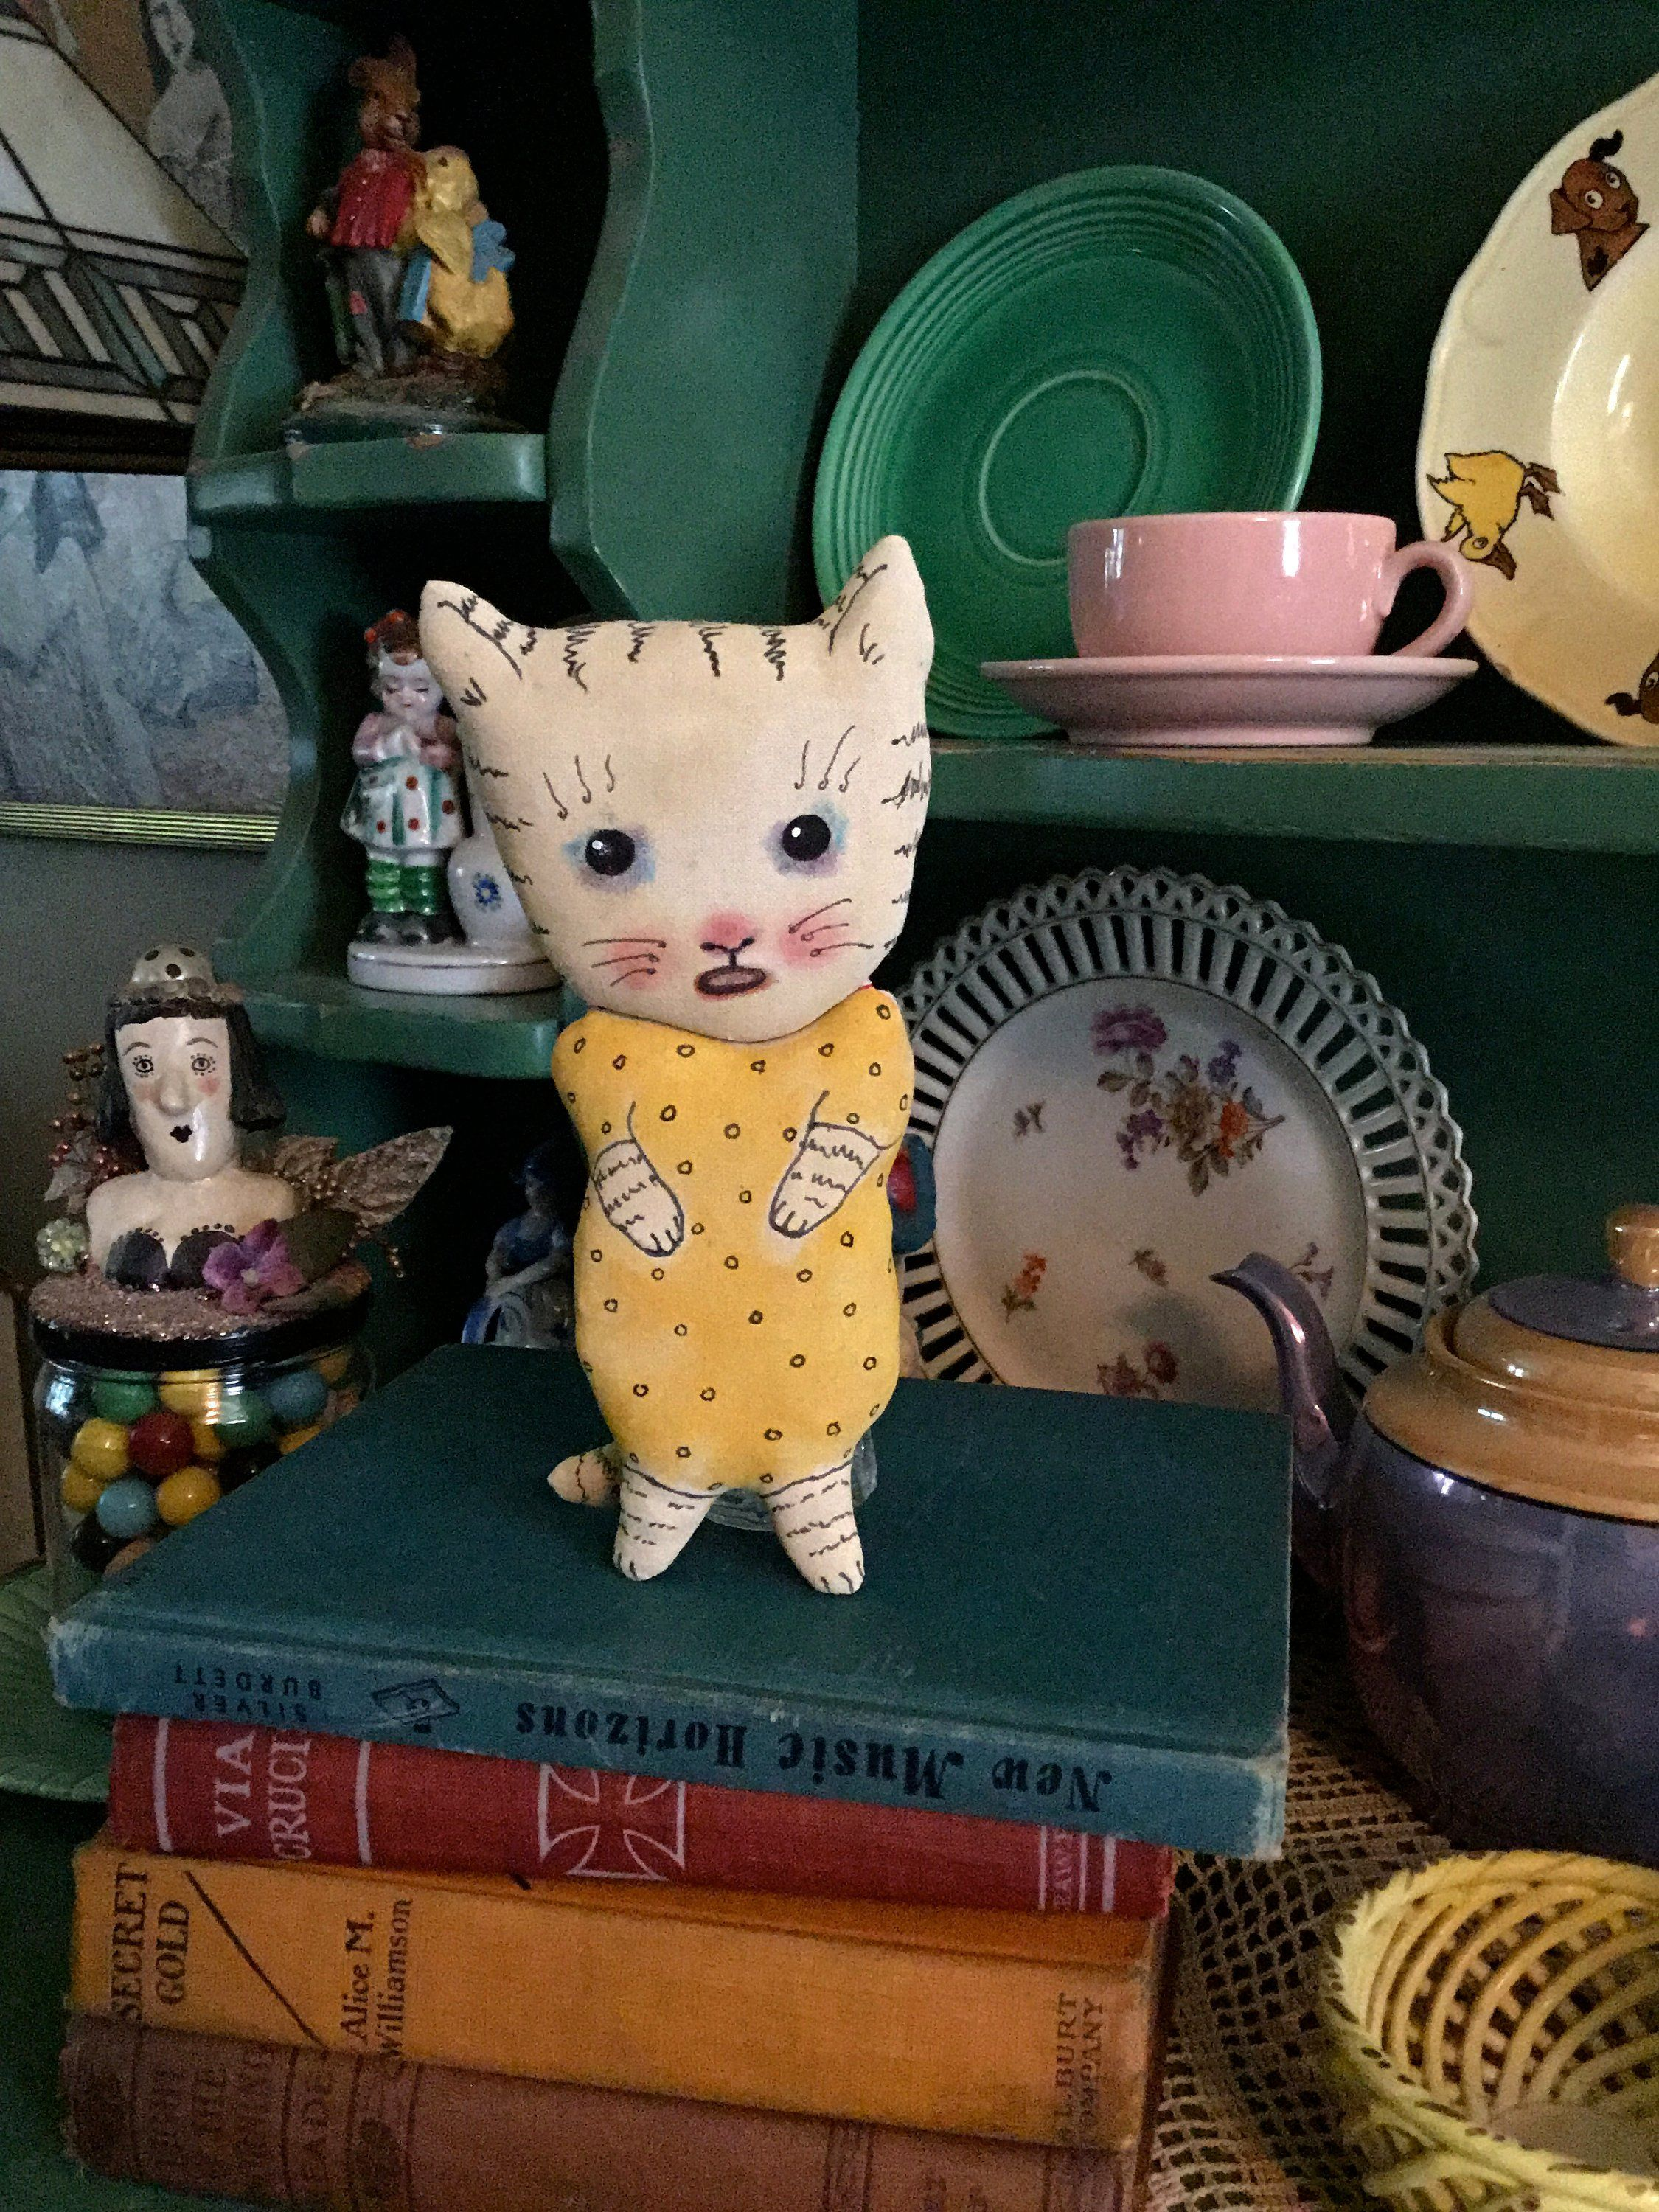 Cry baby cat art doll , sandy mastroni, whimsical wall art